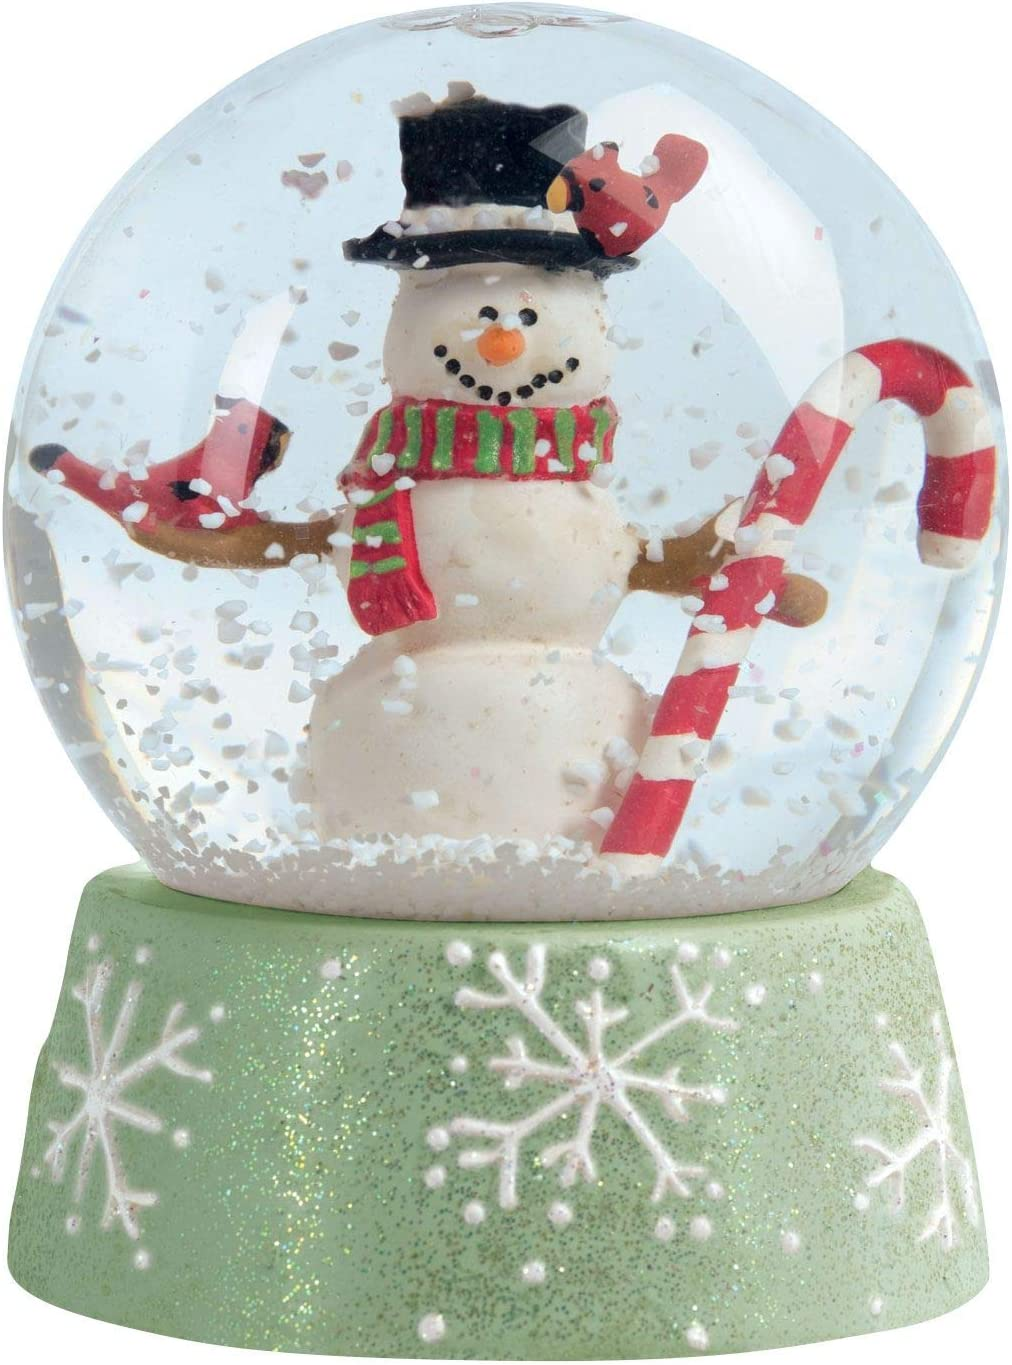 "Paper House Productions 3.5"" x 2.5"" Die-Cut Snow Globe Shaped Magnet for Refrigerators and Lockers"